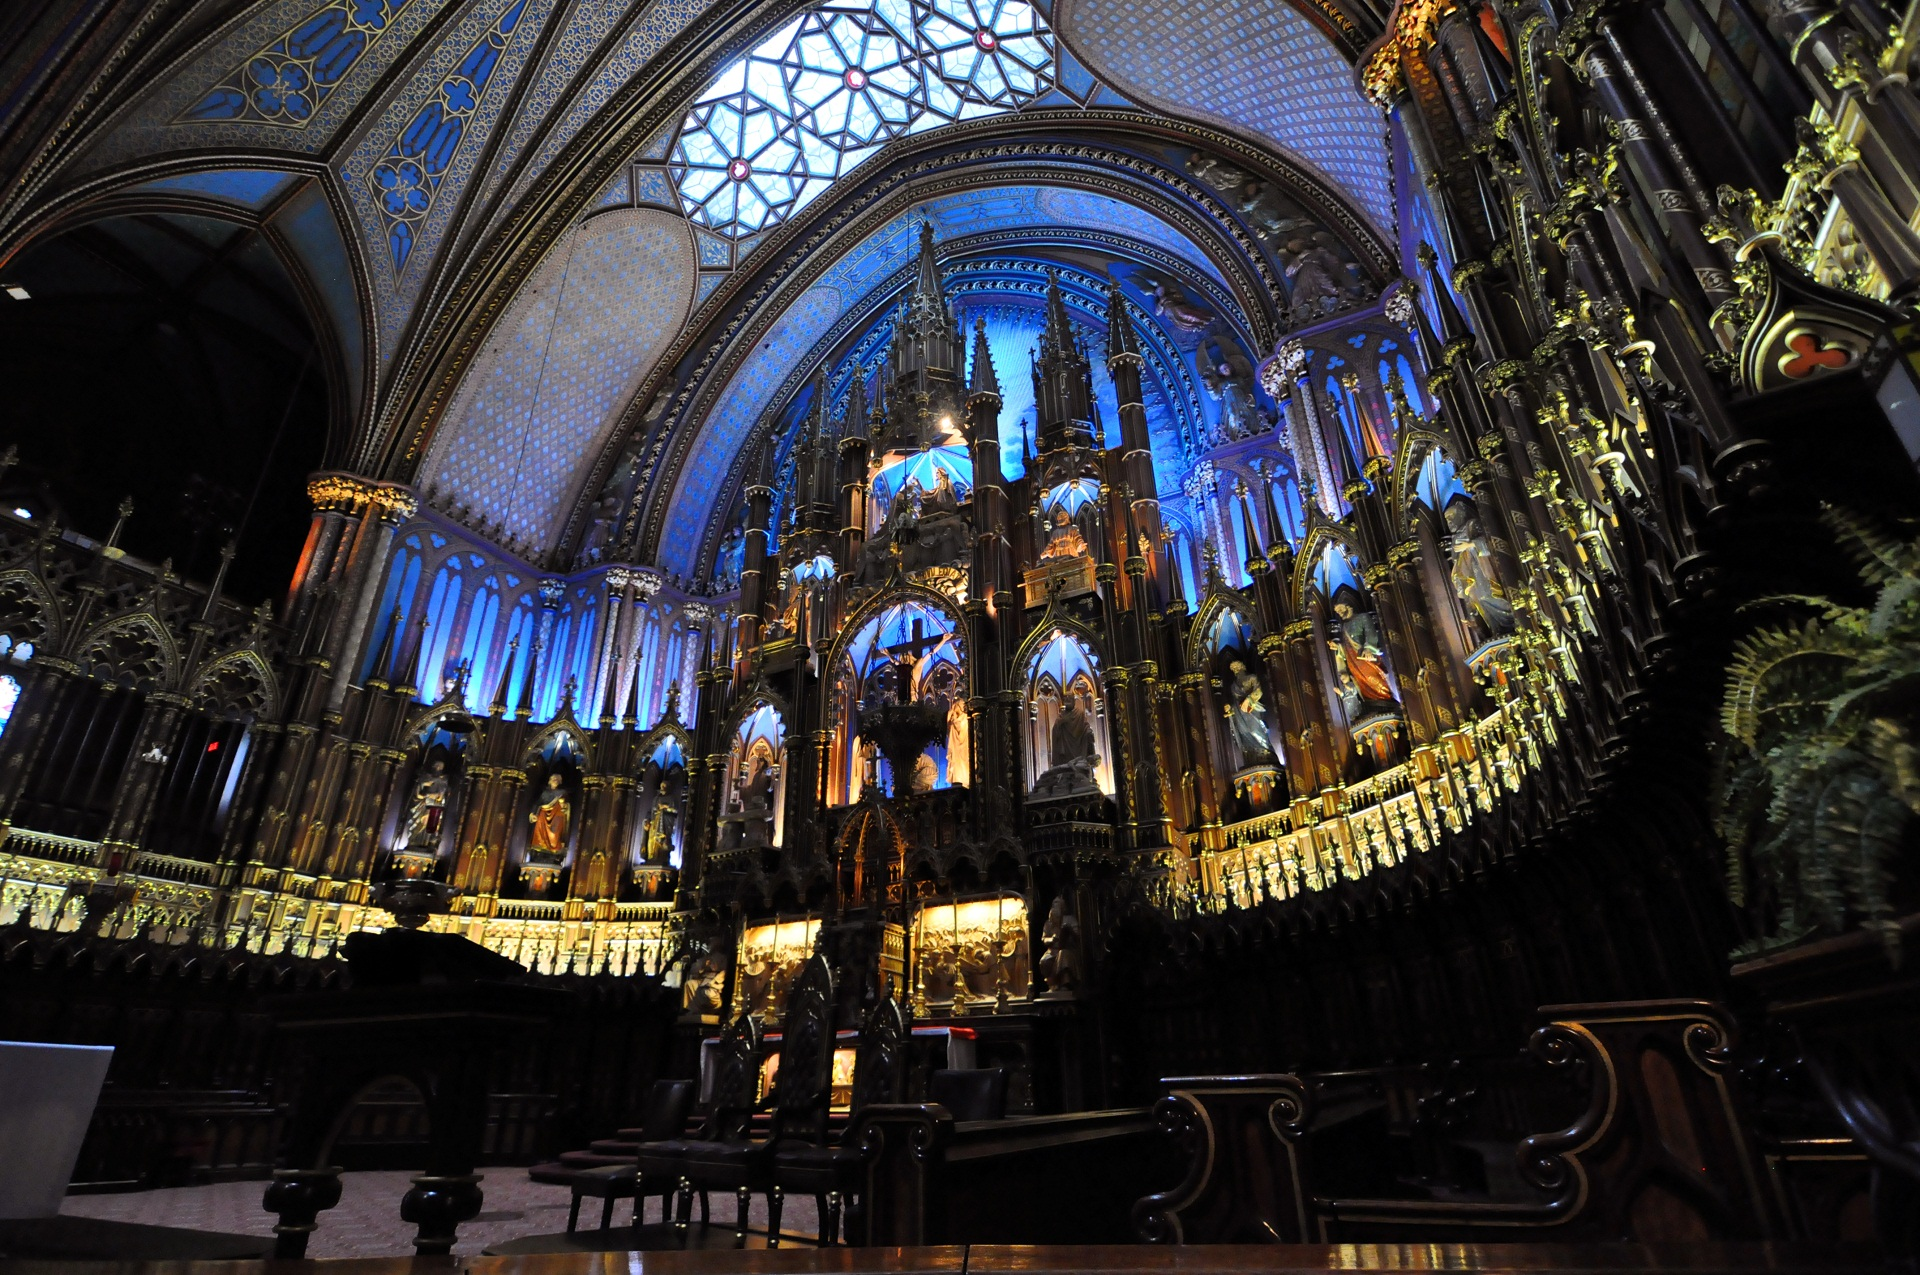 Notre Dame Basilica, Montreal, Canada, Icons and statues